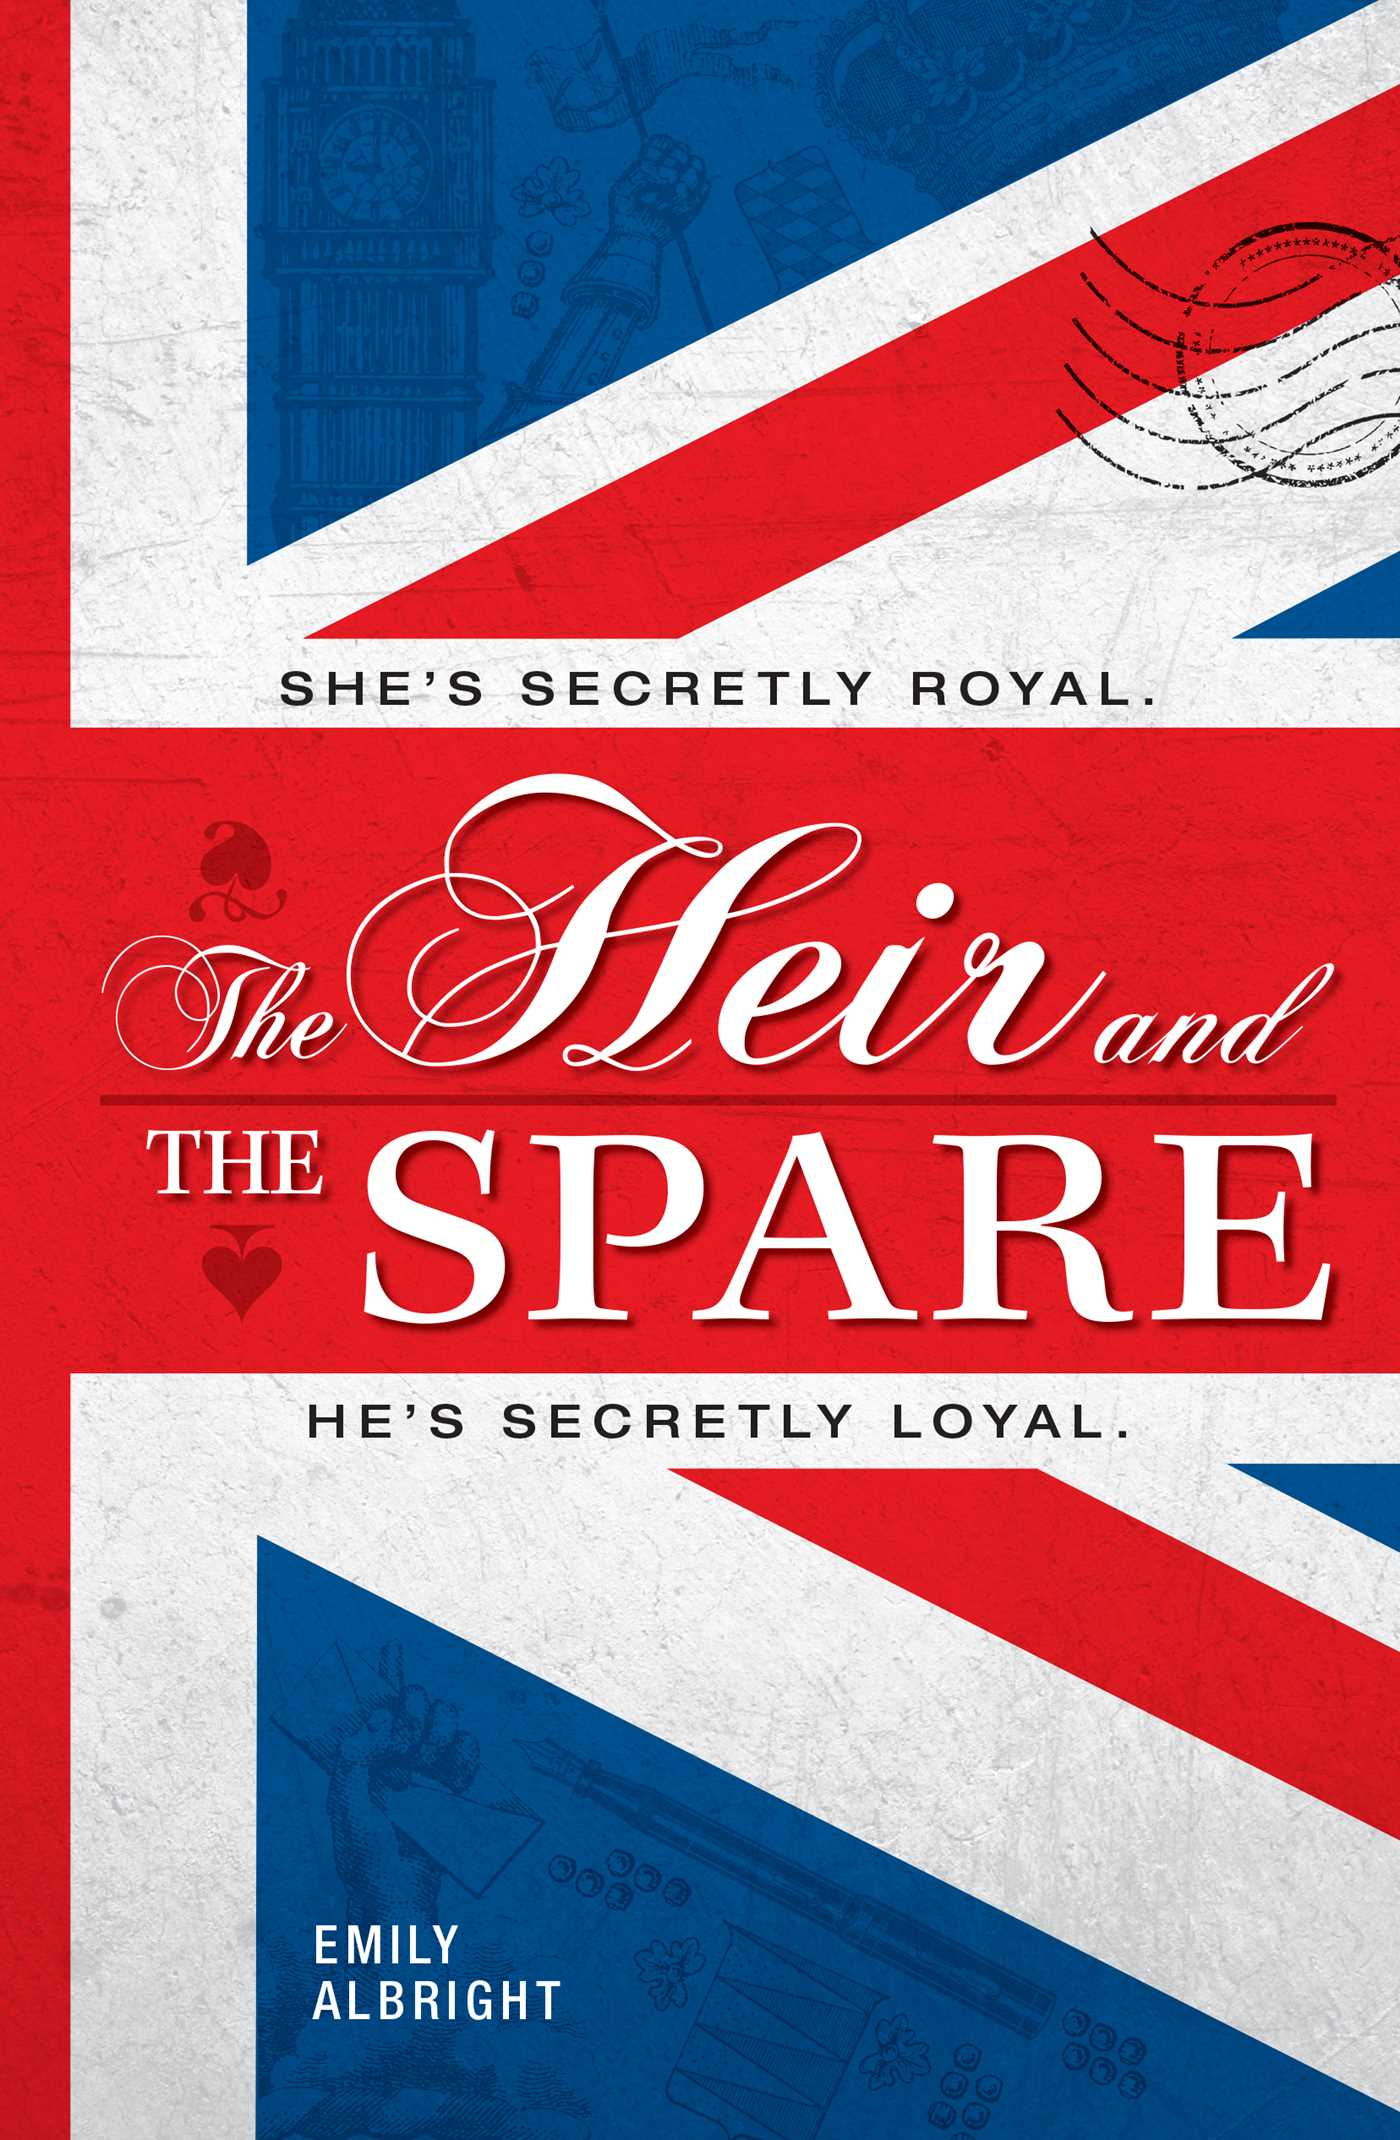 The heir and the spare 9781440590115 hr